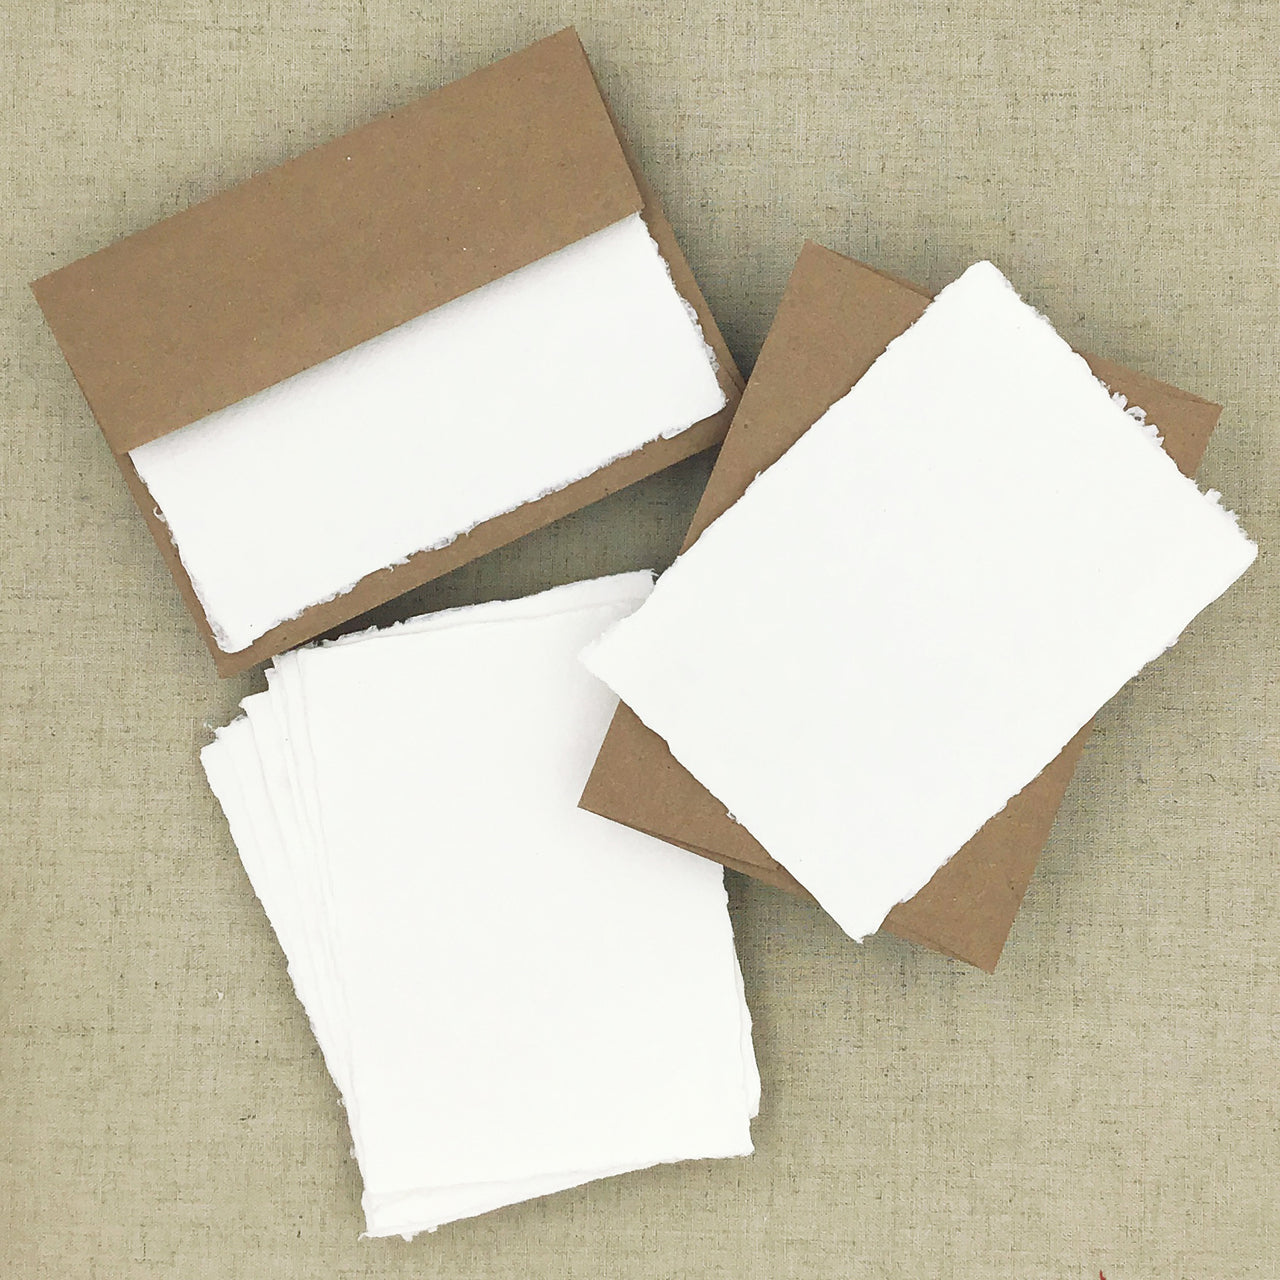 Two Hands Paperie Recycled Stationery- 8 Pack- White